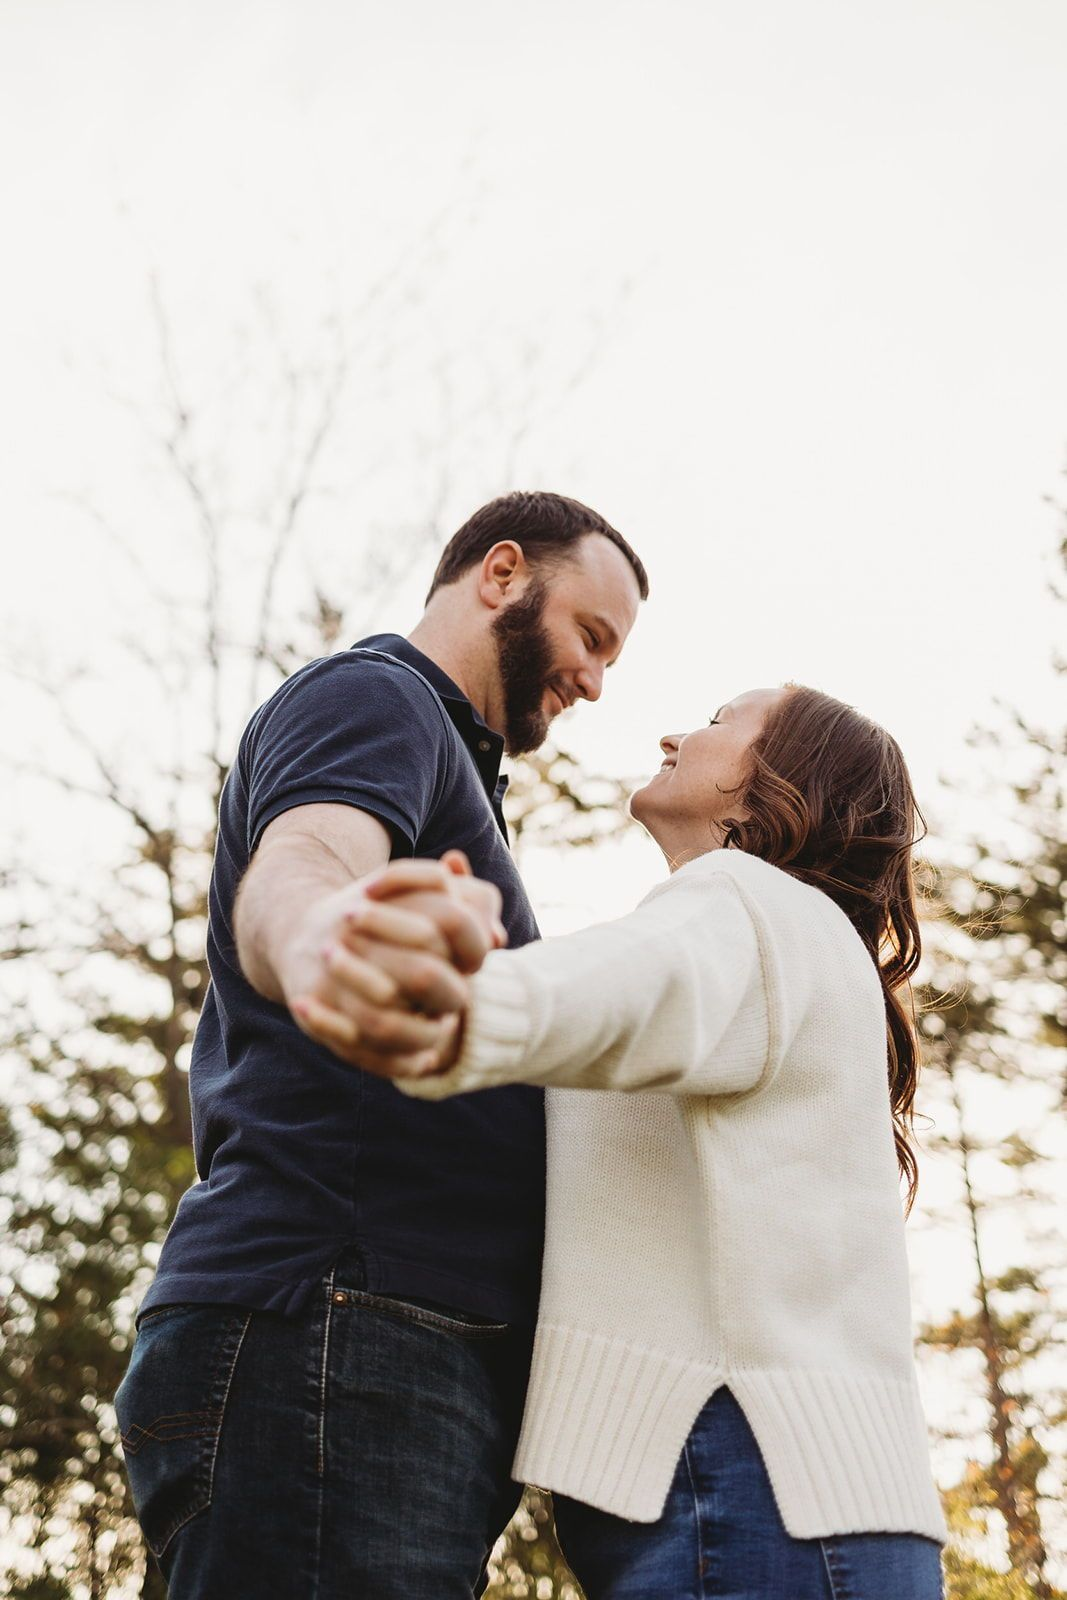 Cute engagement session at western Michigan university in park. Perfect inspiration for couples photo shoot poses ideas. Couple holding hands showing off her engagement ring. Engagement photo shoot inspiration in fall! Traveling Wedding and Couples Photographer. Lindsay Elaine Photography.